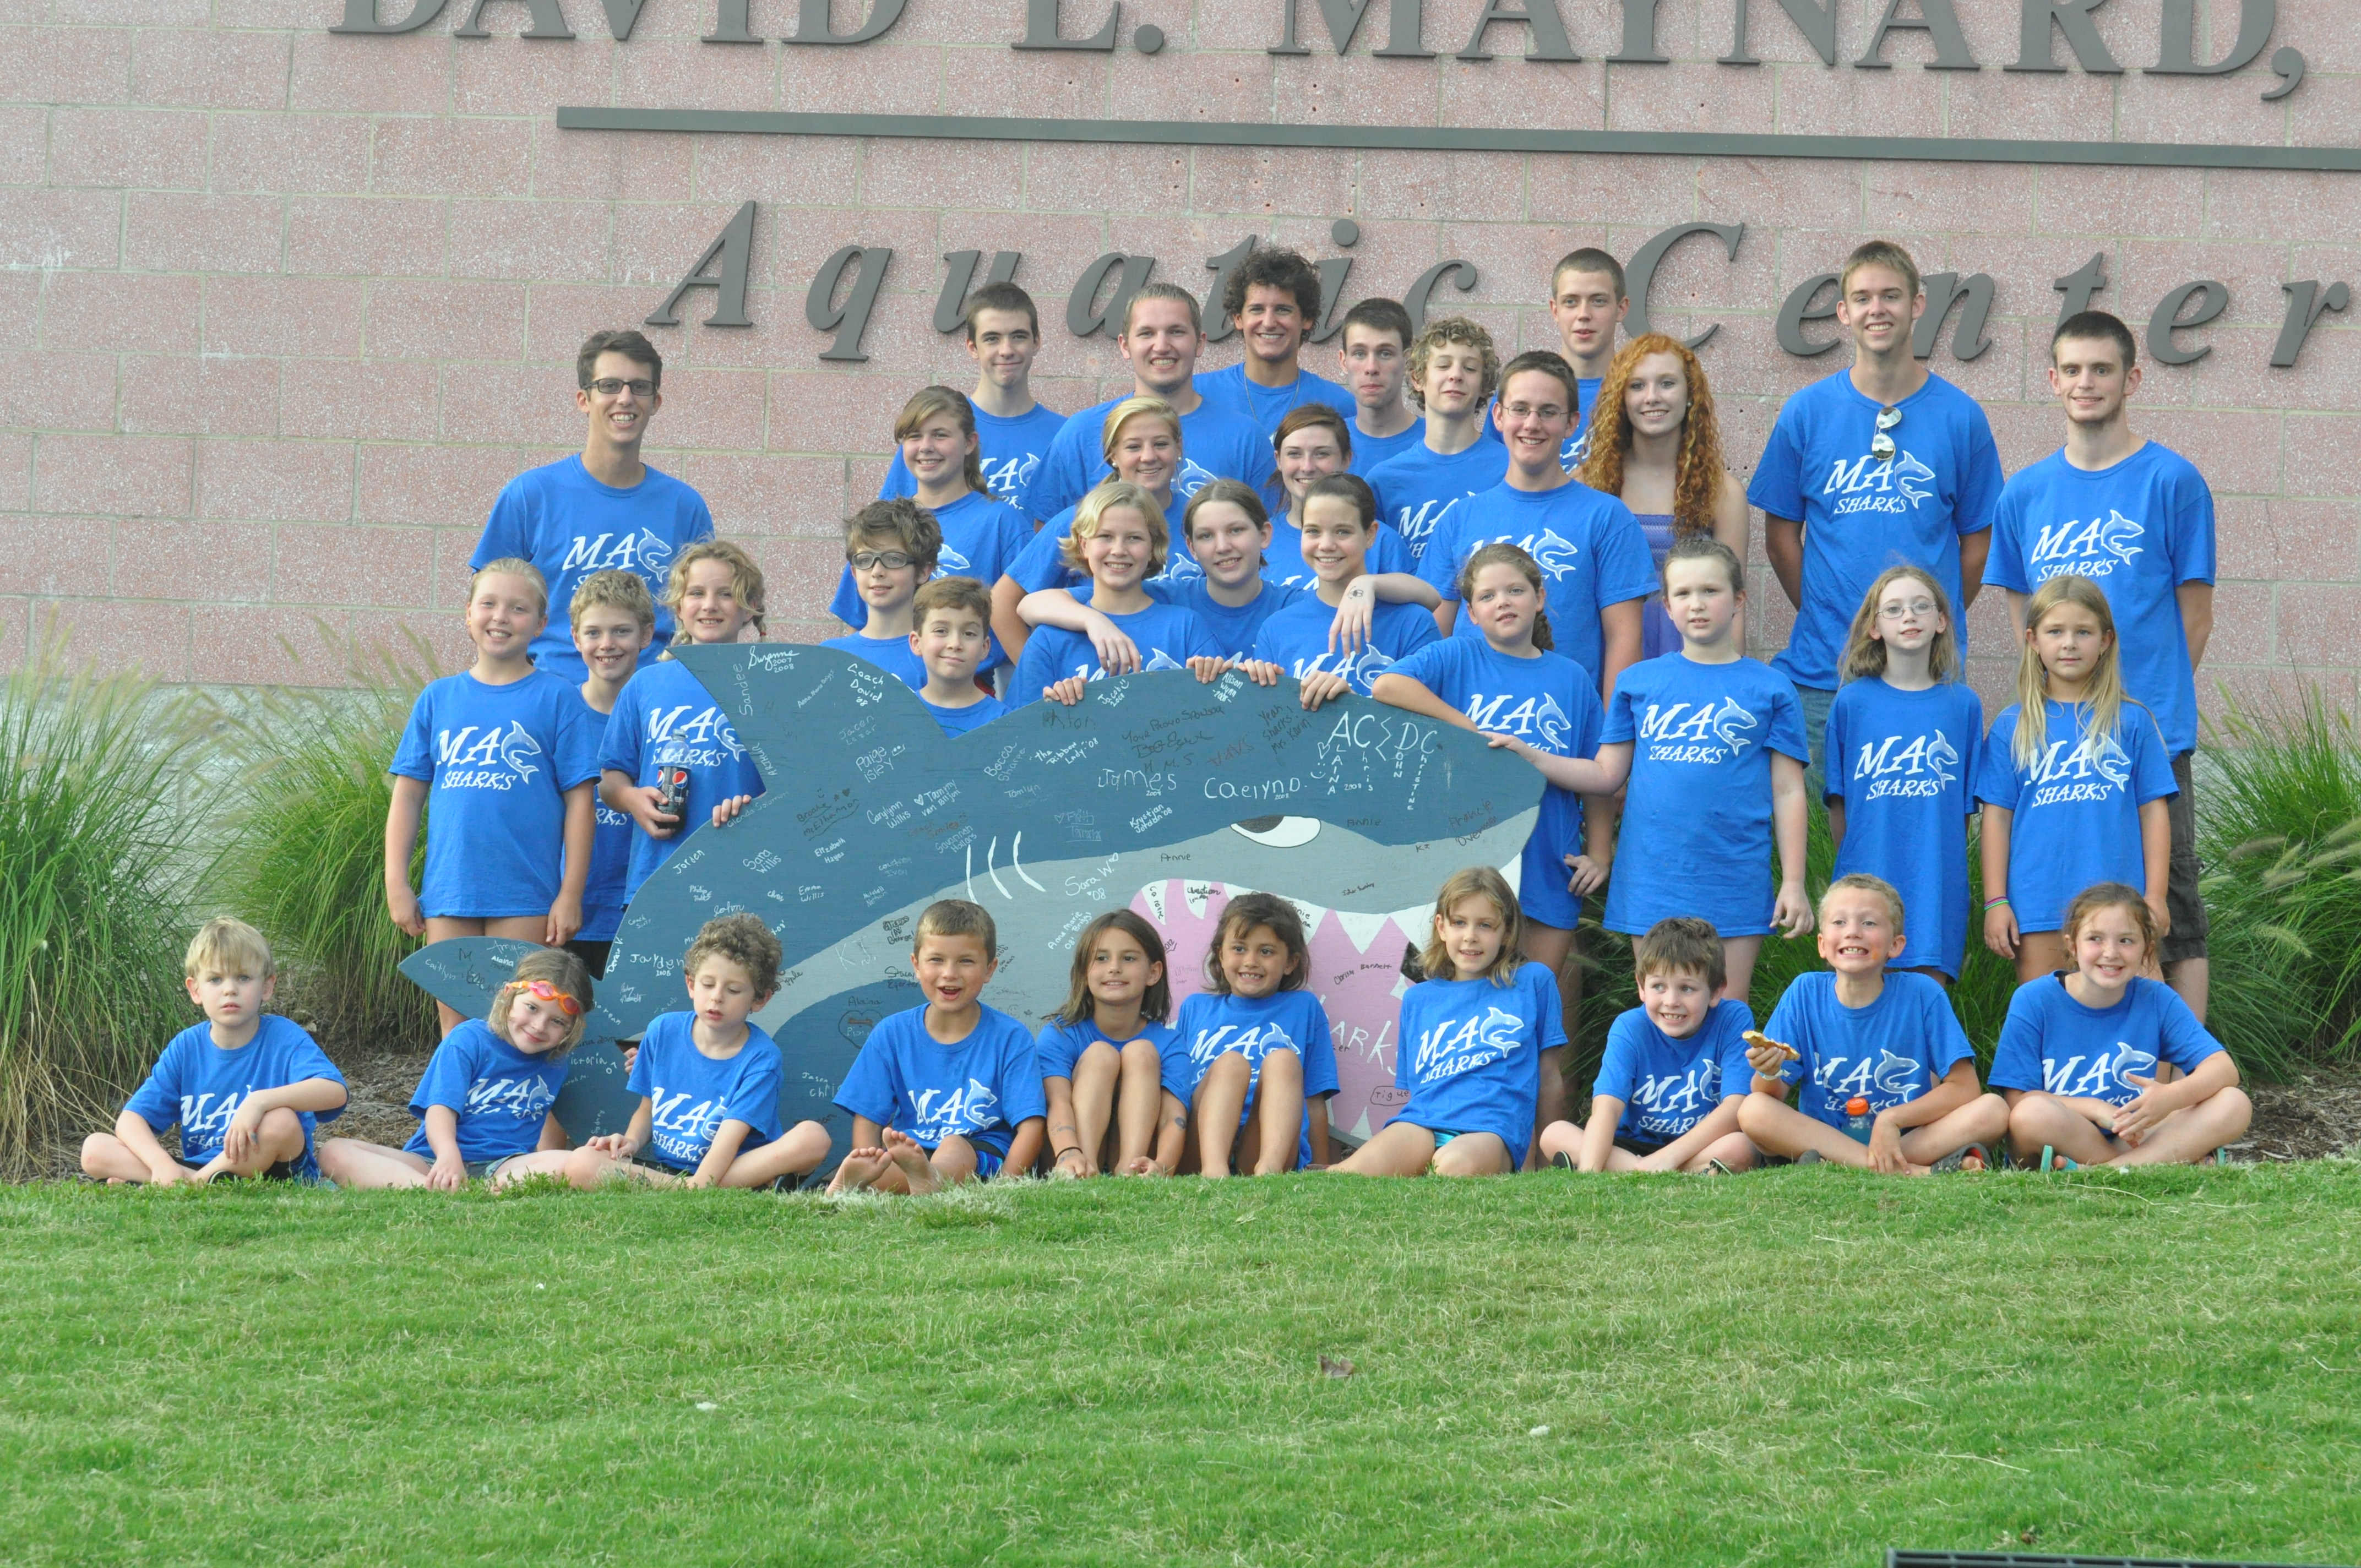 COBA Summer Swim Team Program 2012 Team Photo